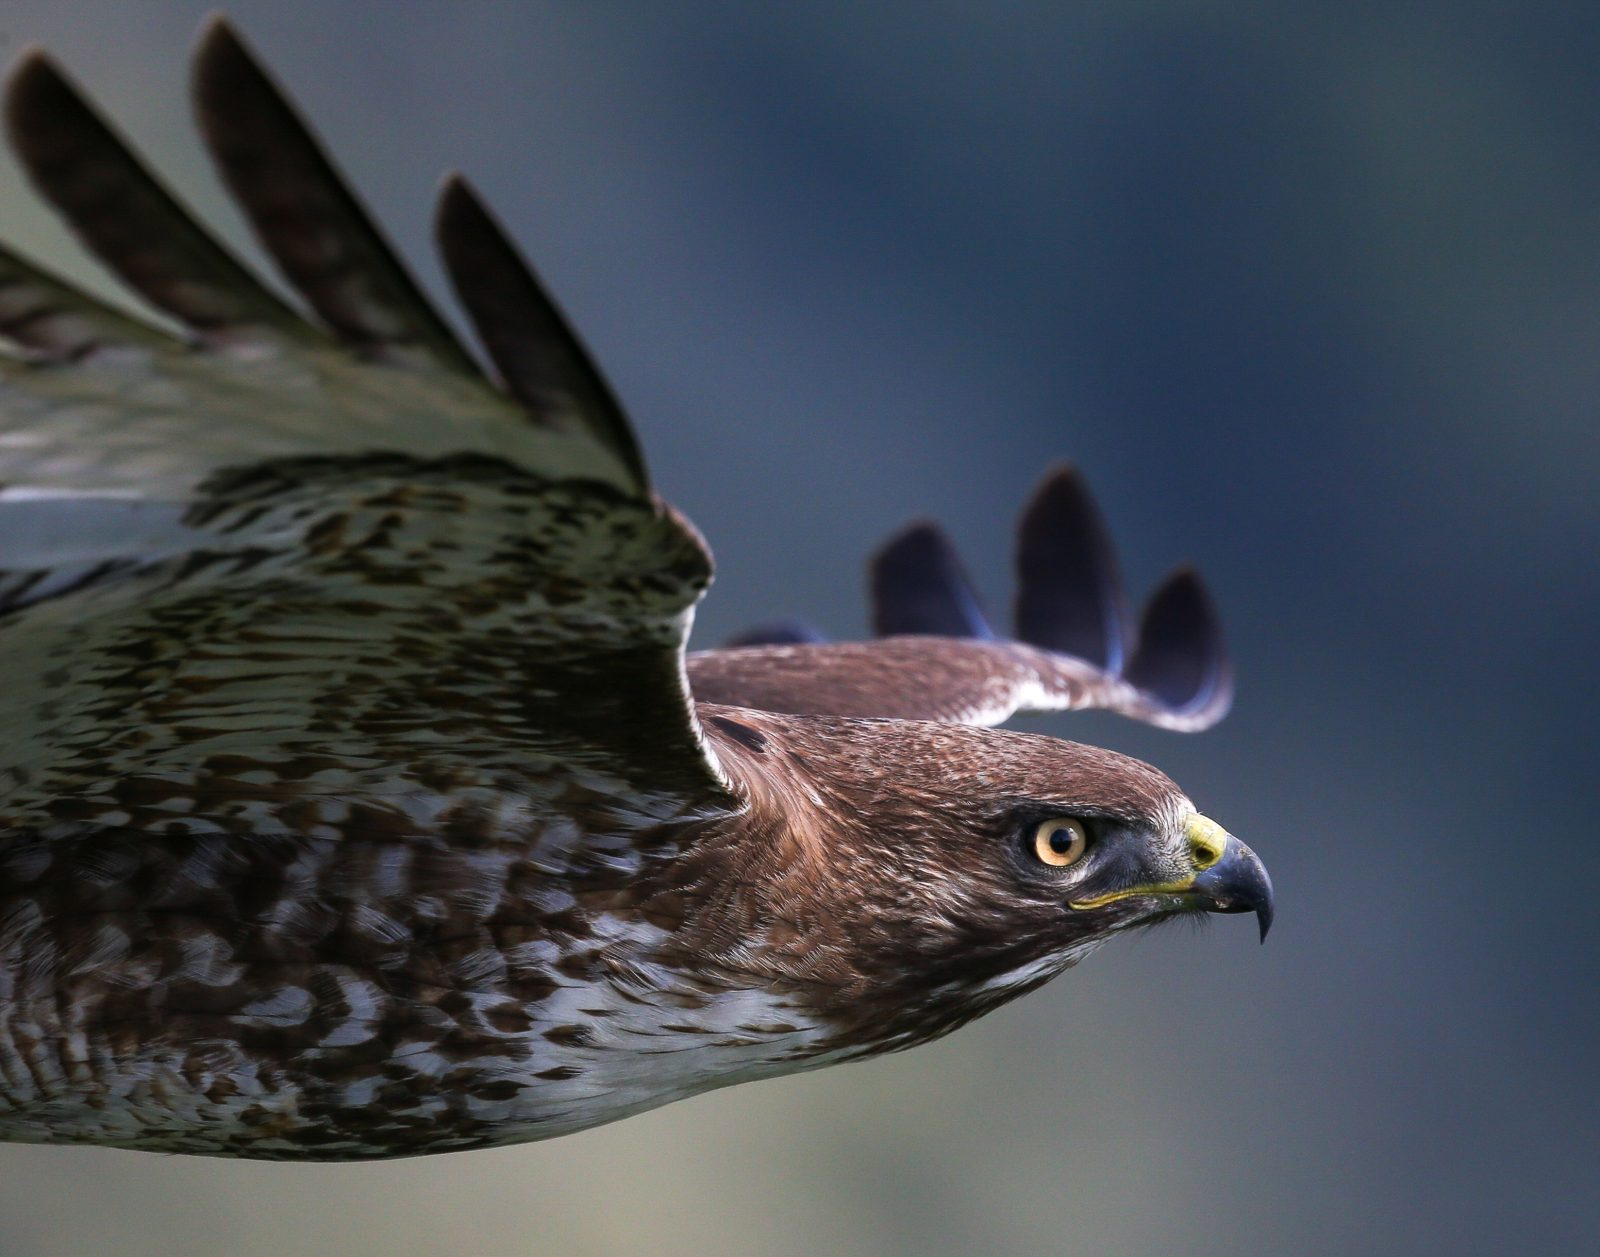 Birds in Flight 2021: Red-tailed Hawk by Anthony Fuccella